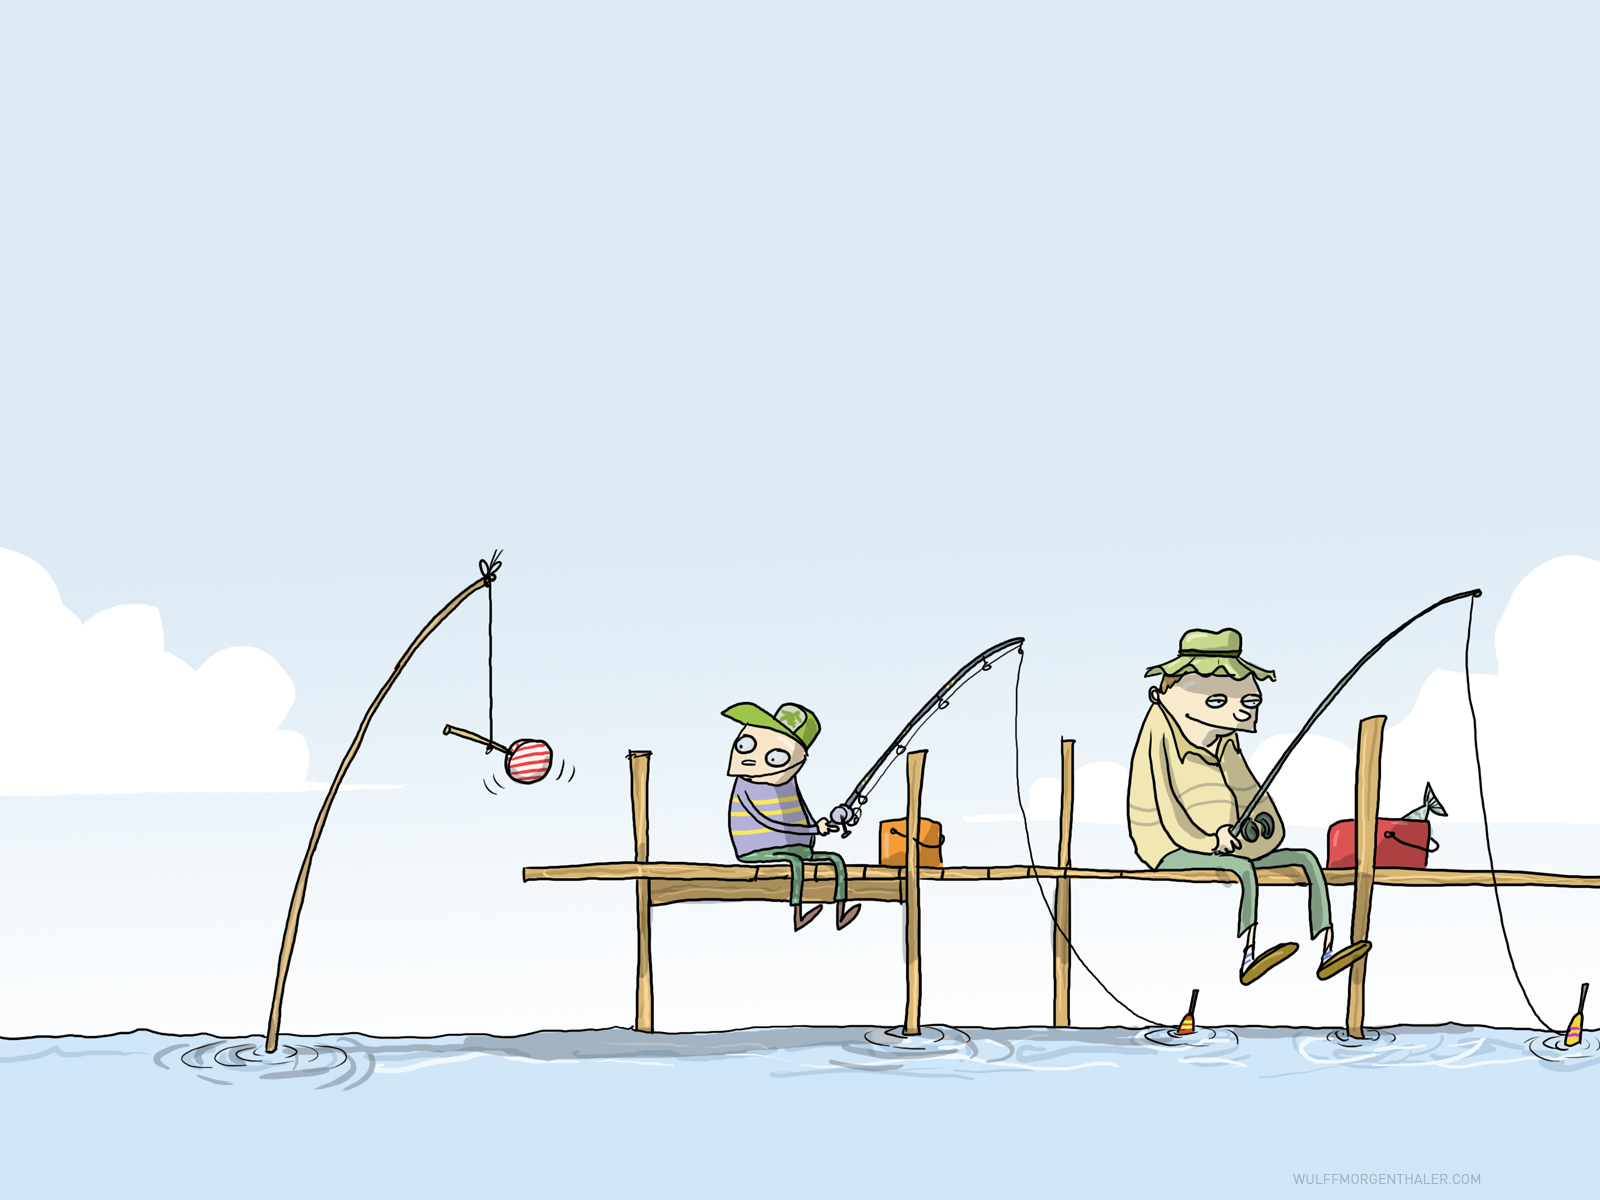 cartoons funny fishing Wulffmorgenthaler HD Wallpaper